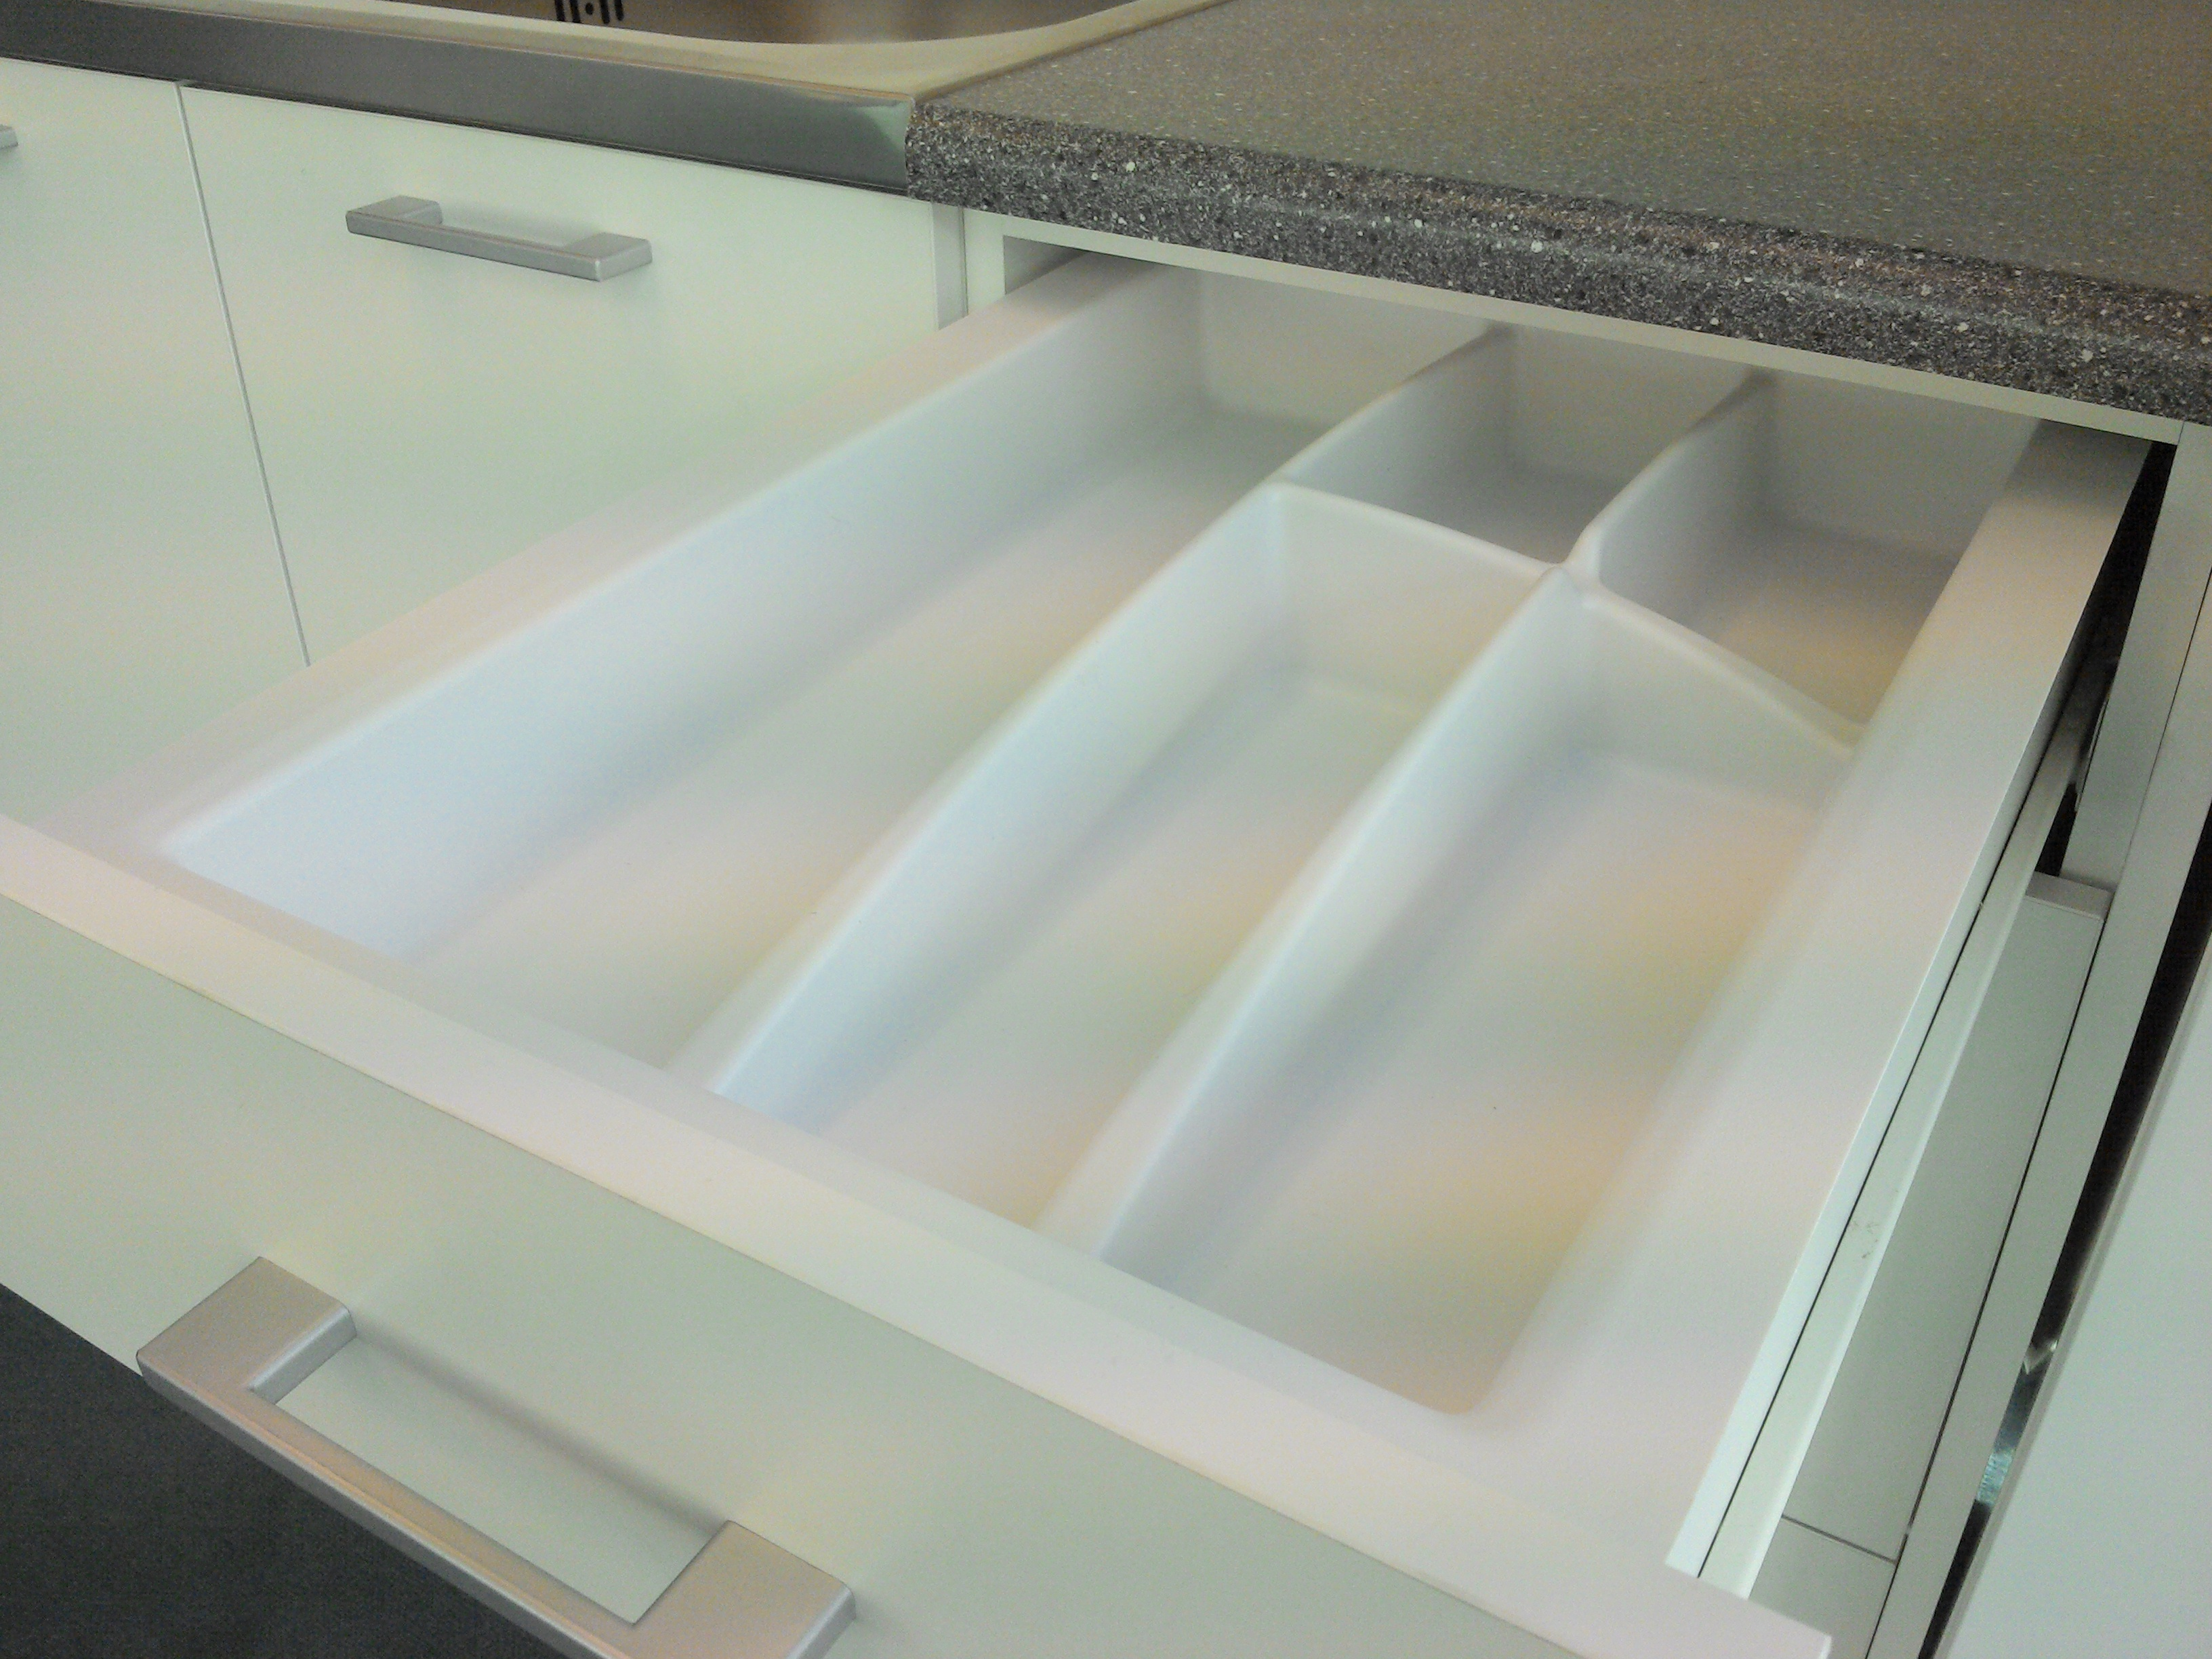 400mm wide Plastic Cutlery Insert 3 for Kitchen Drawers